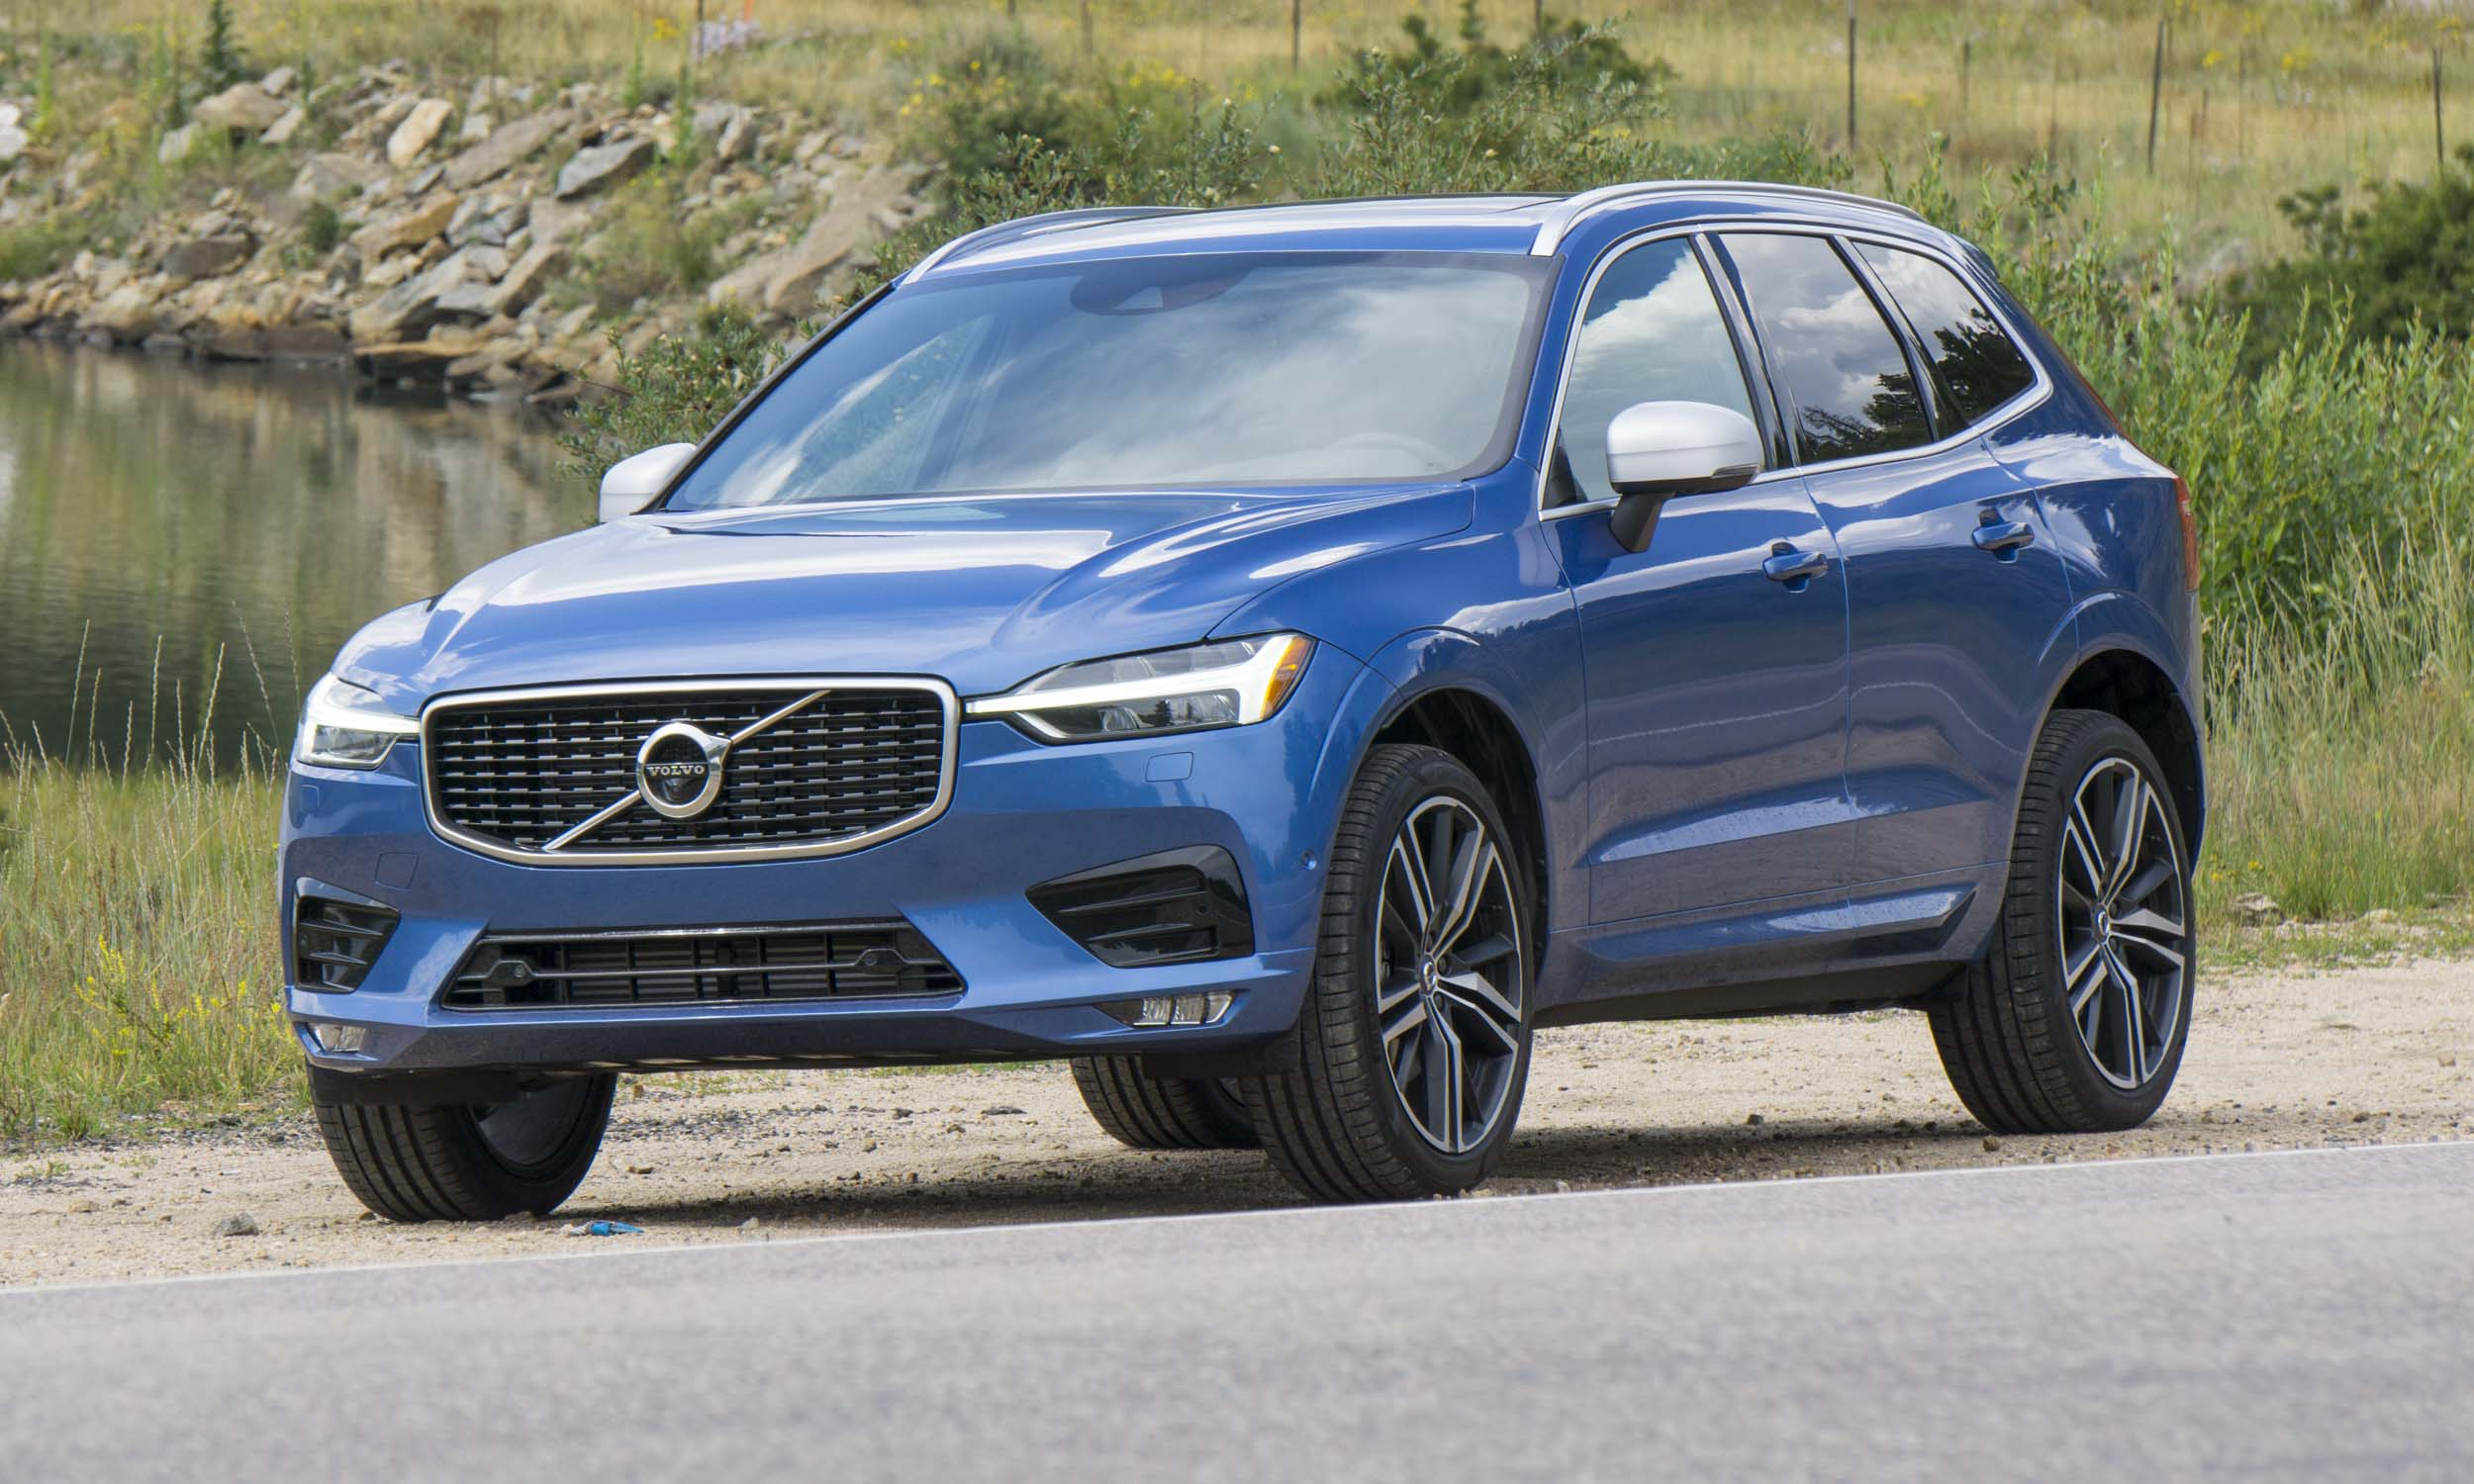 new safest s was overall all ncap the car suv volvo is euro photos news tested in